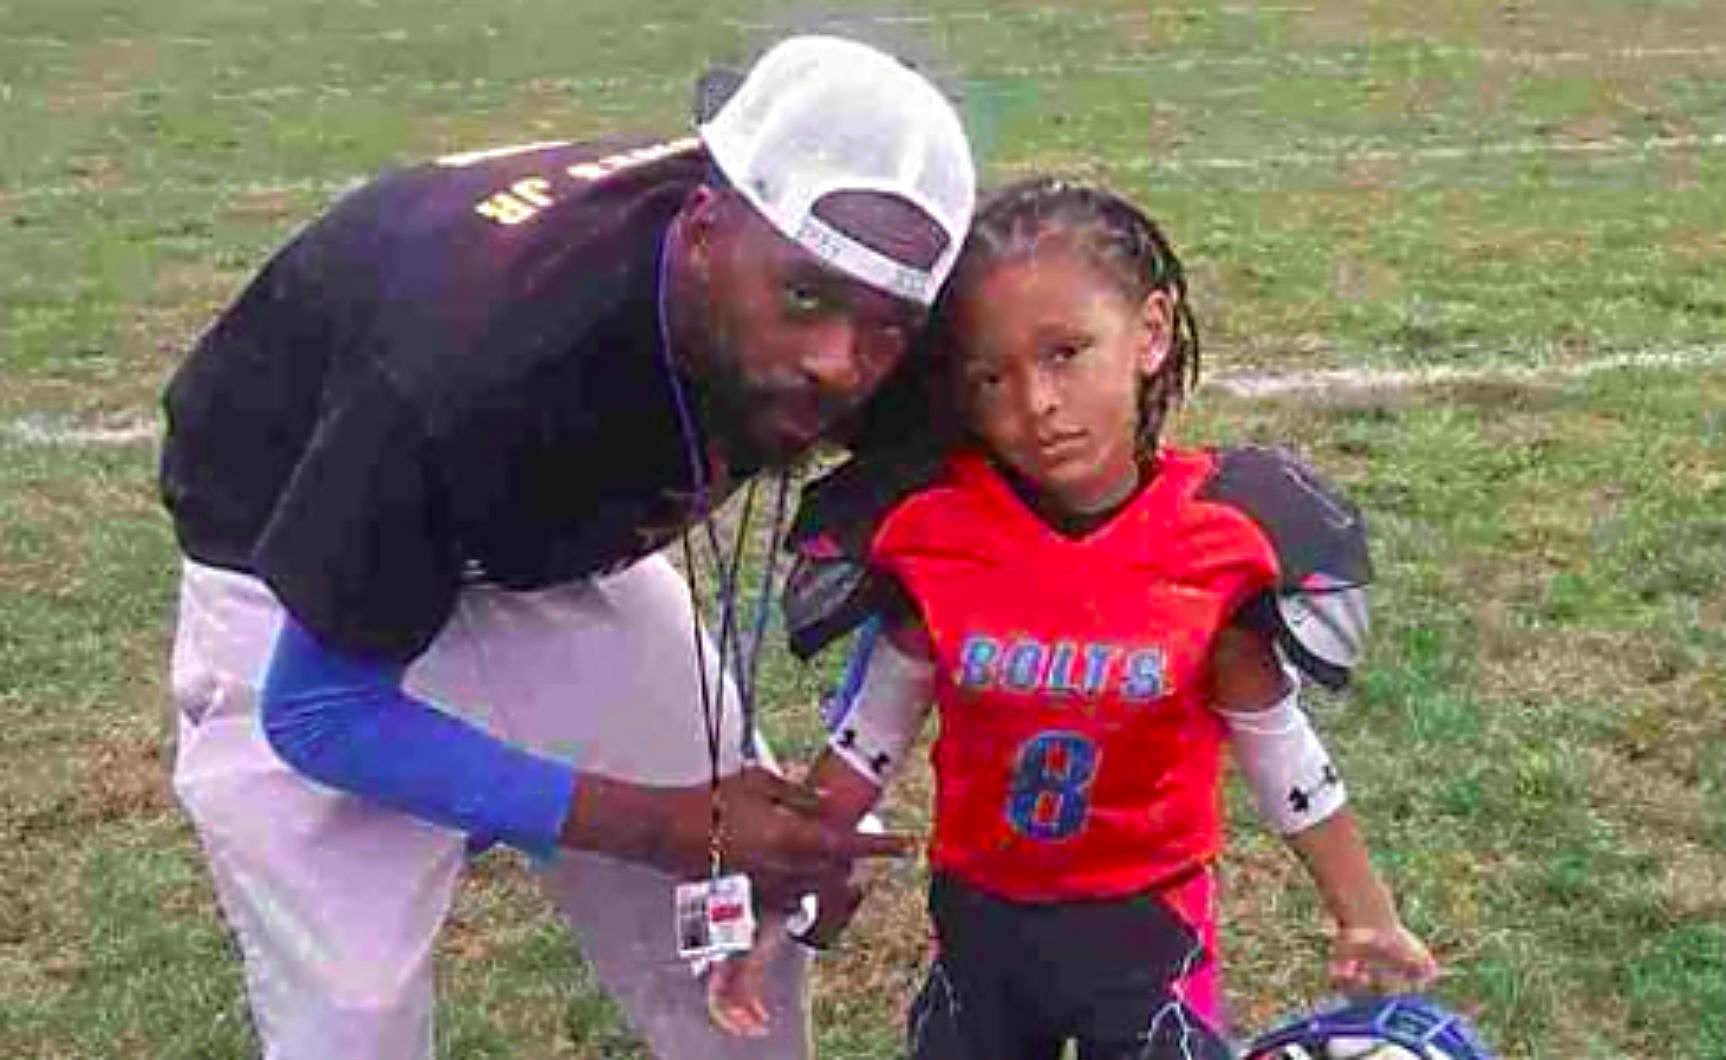 Millville youth football coach shot dead while children played